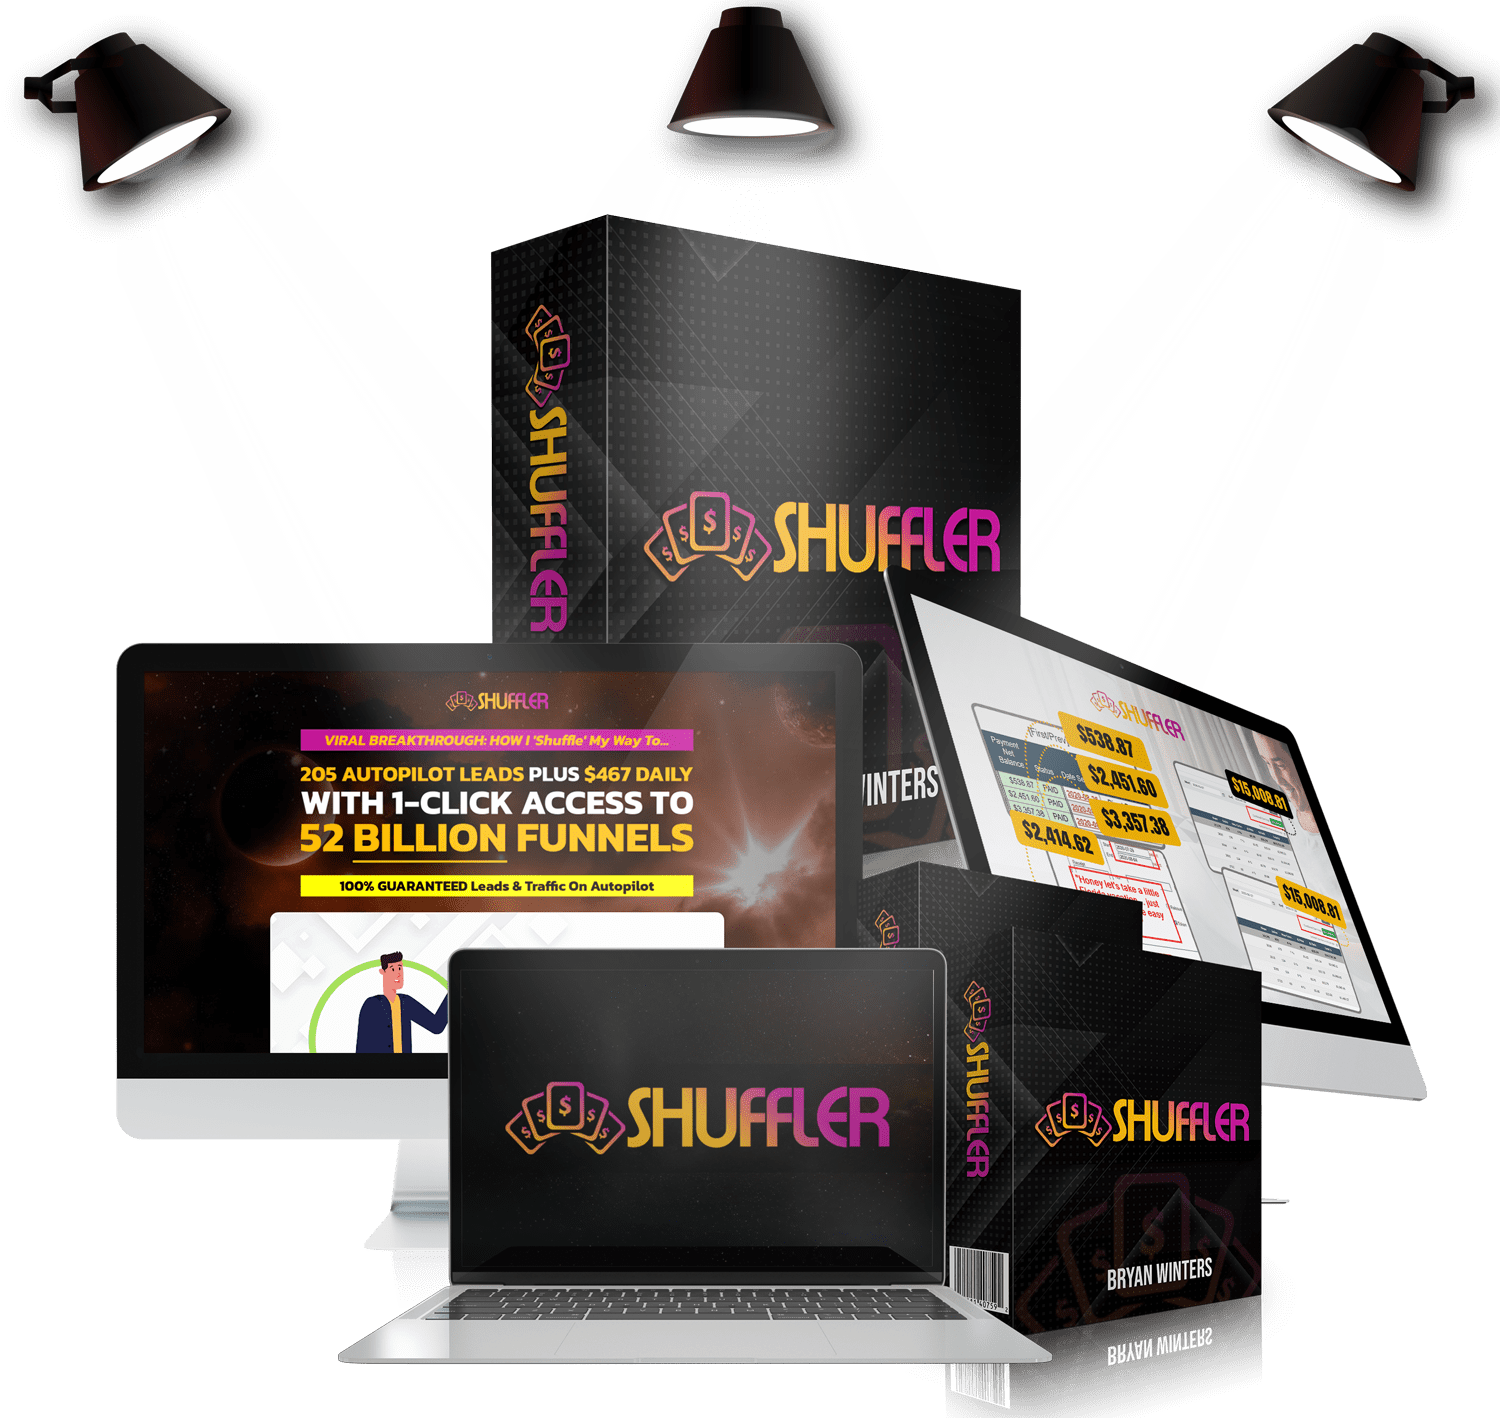 Shuffler Review